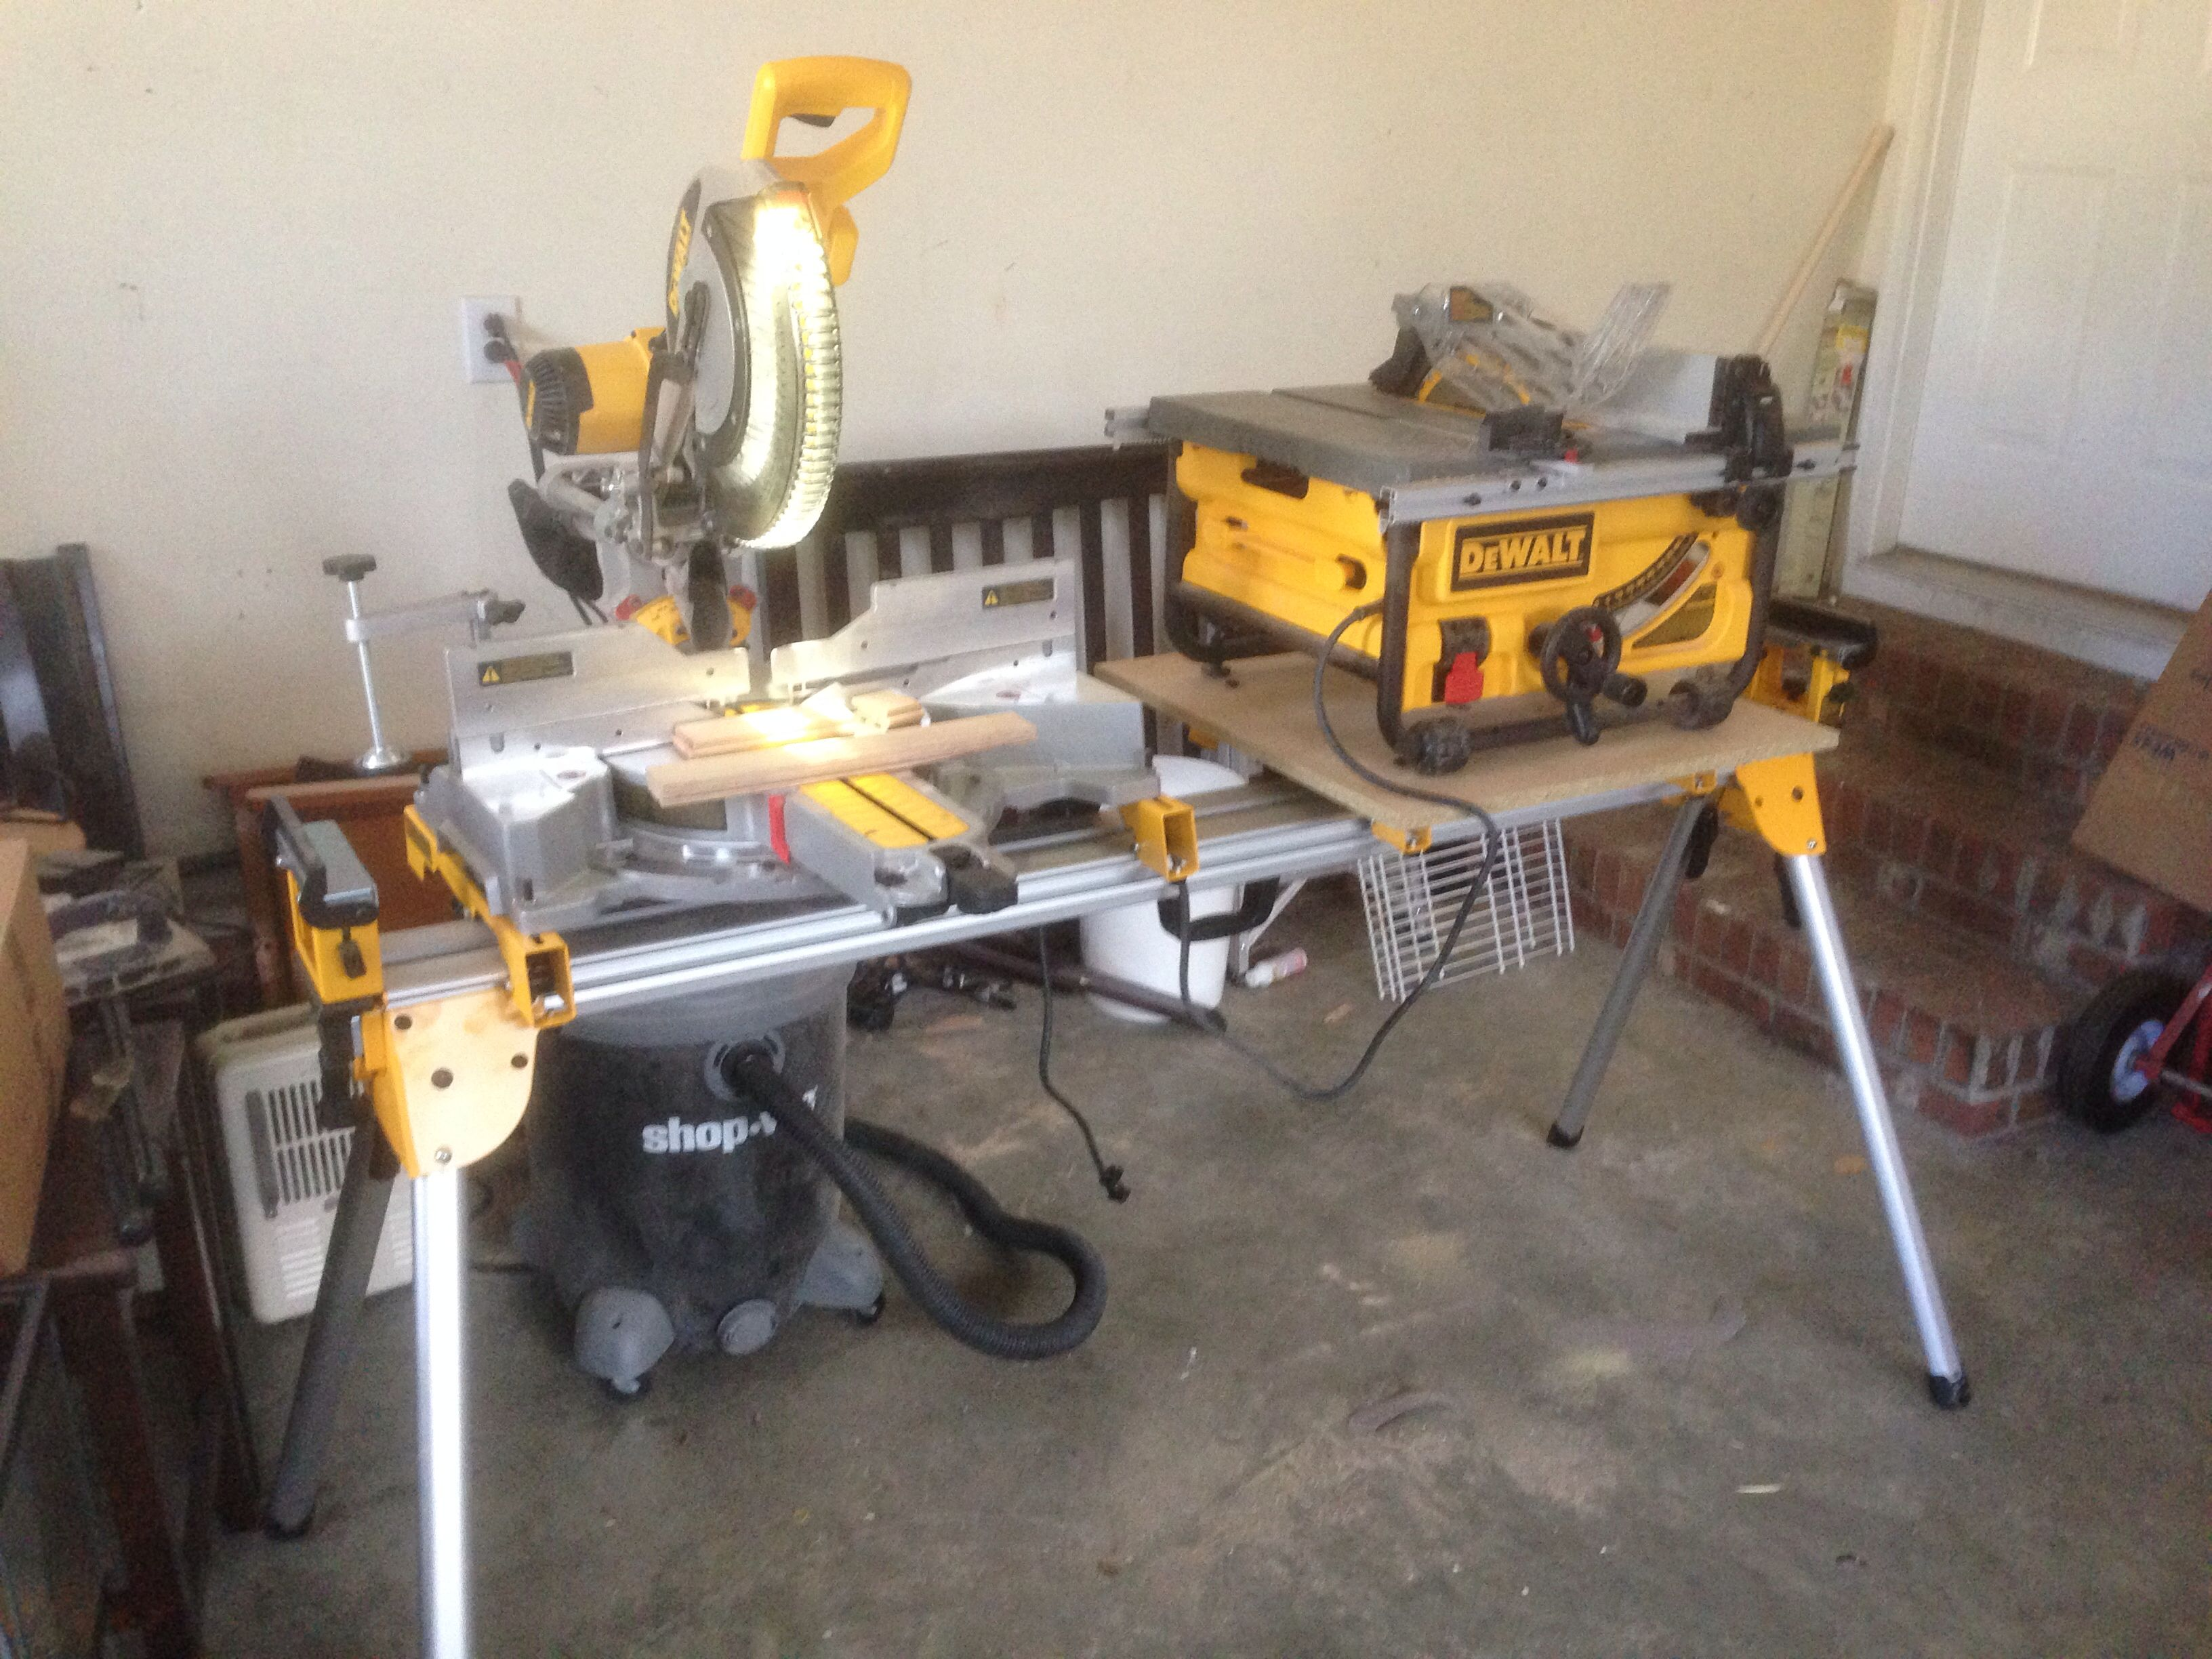 How To Get Dewalt Miter Saw And Table Saw On Same Stand